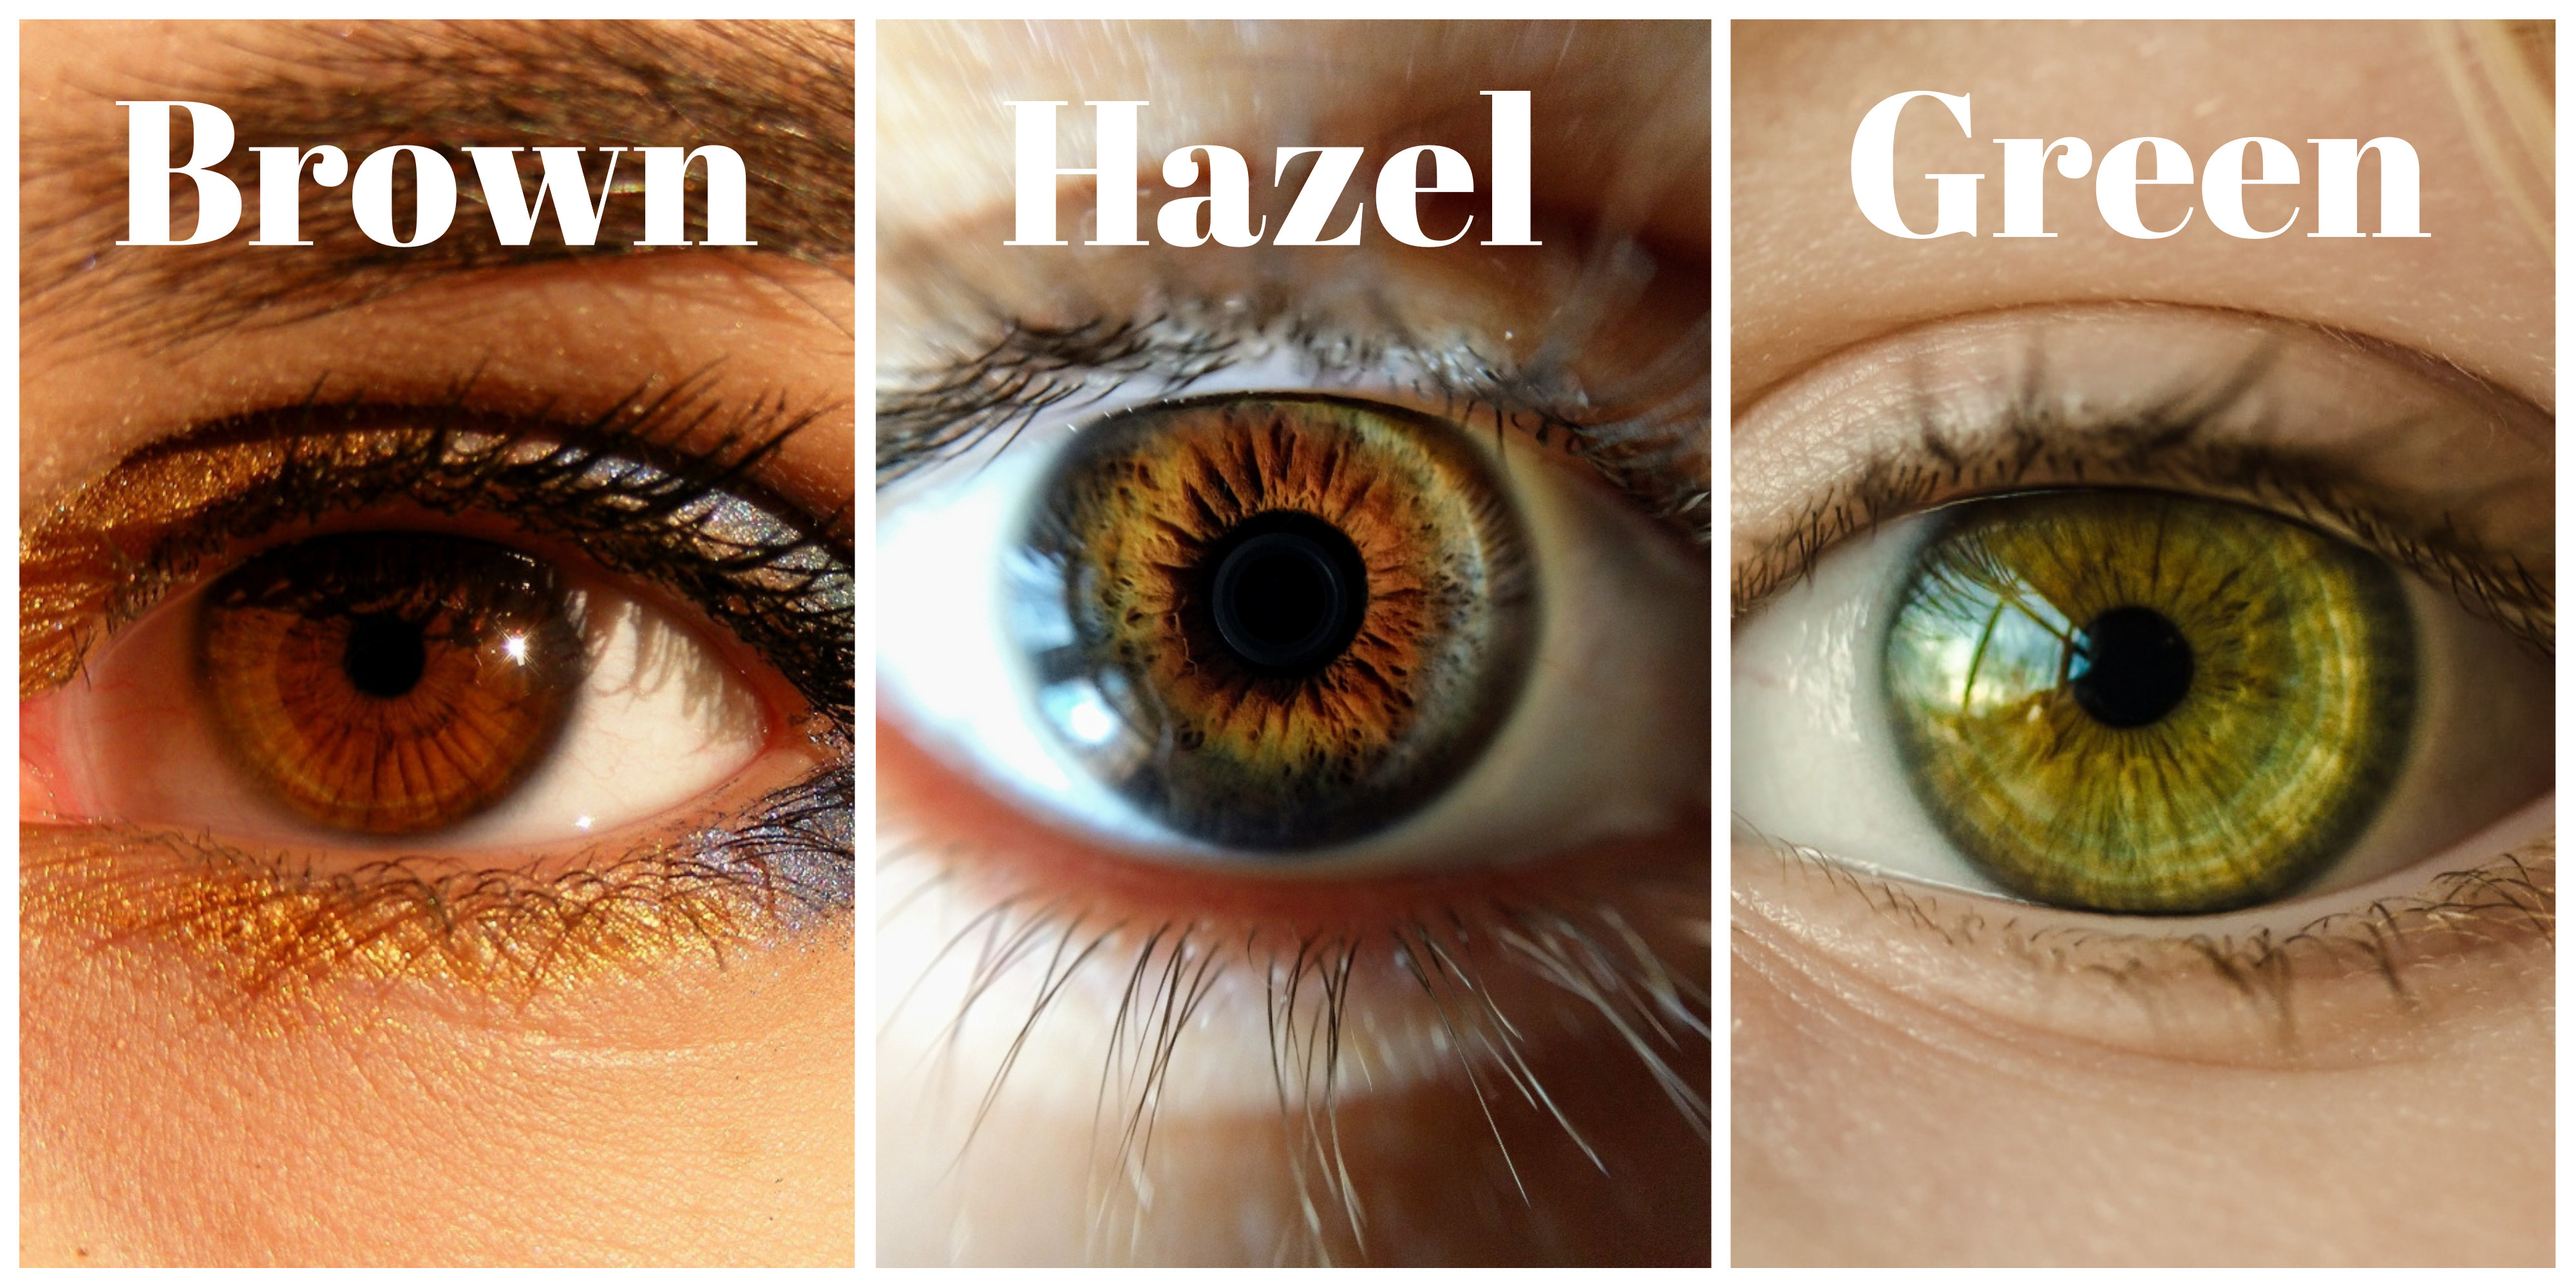 diffrence-between-green-brown-and-hazel-eyes